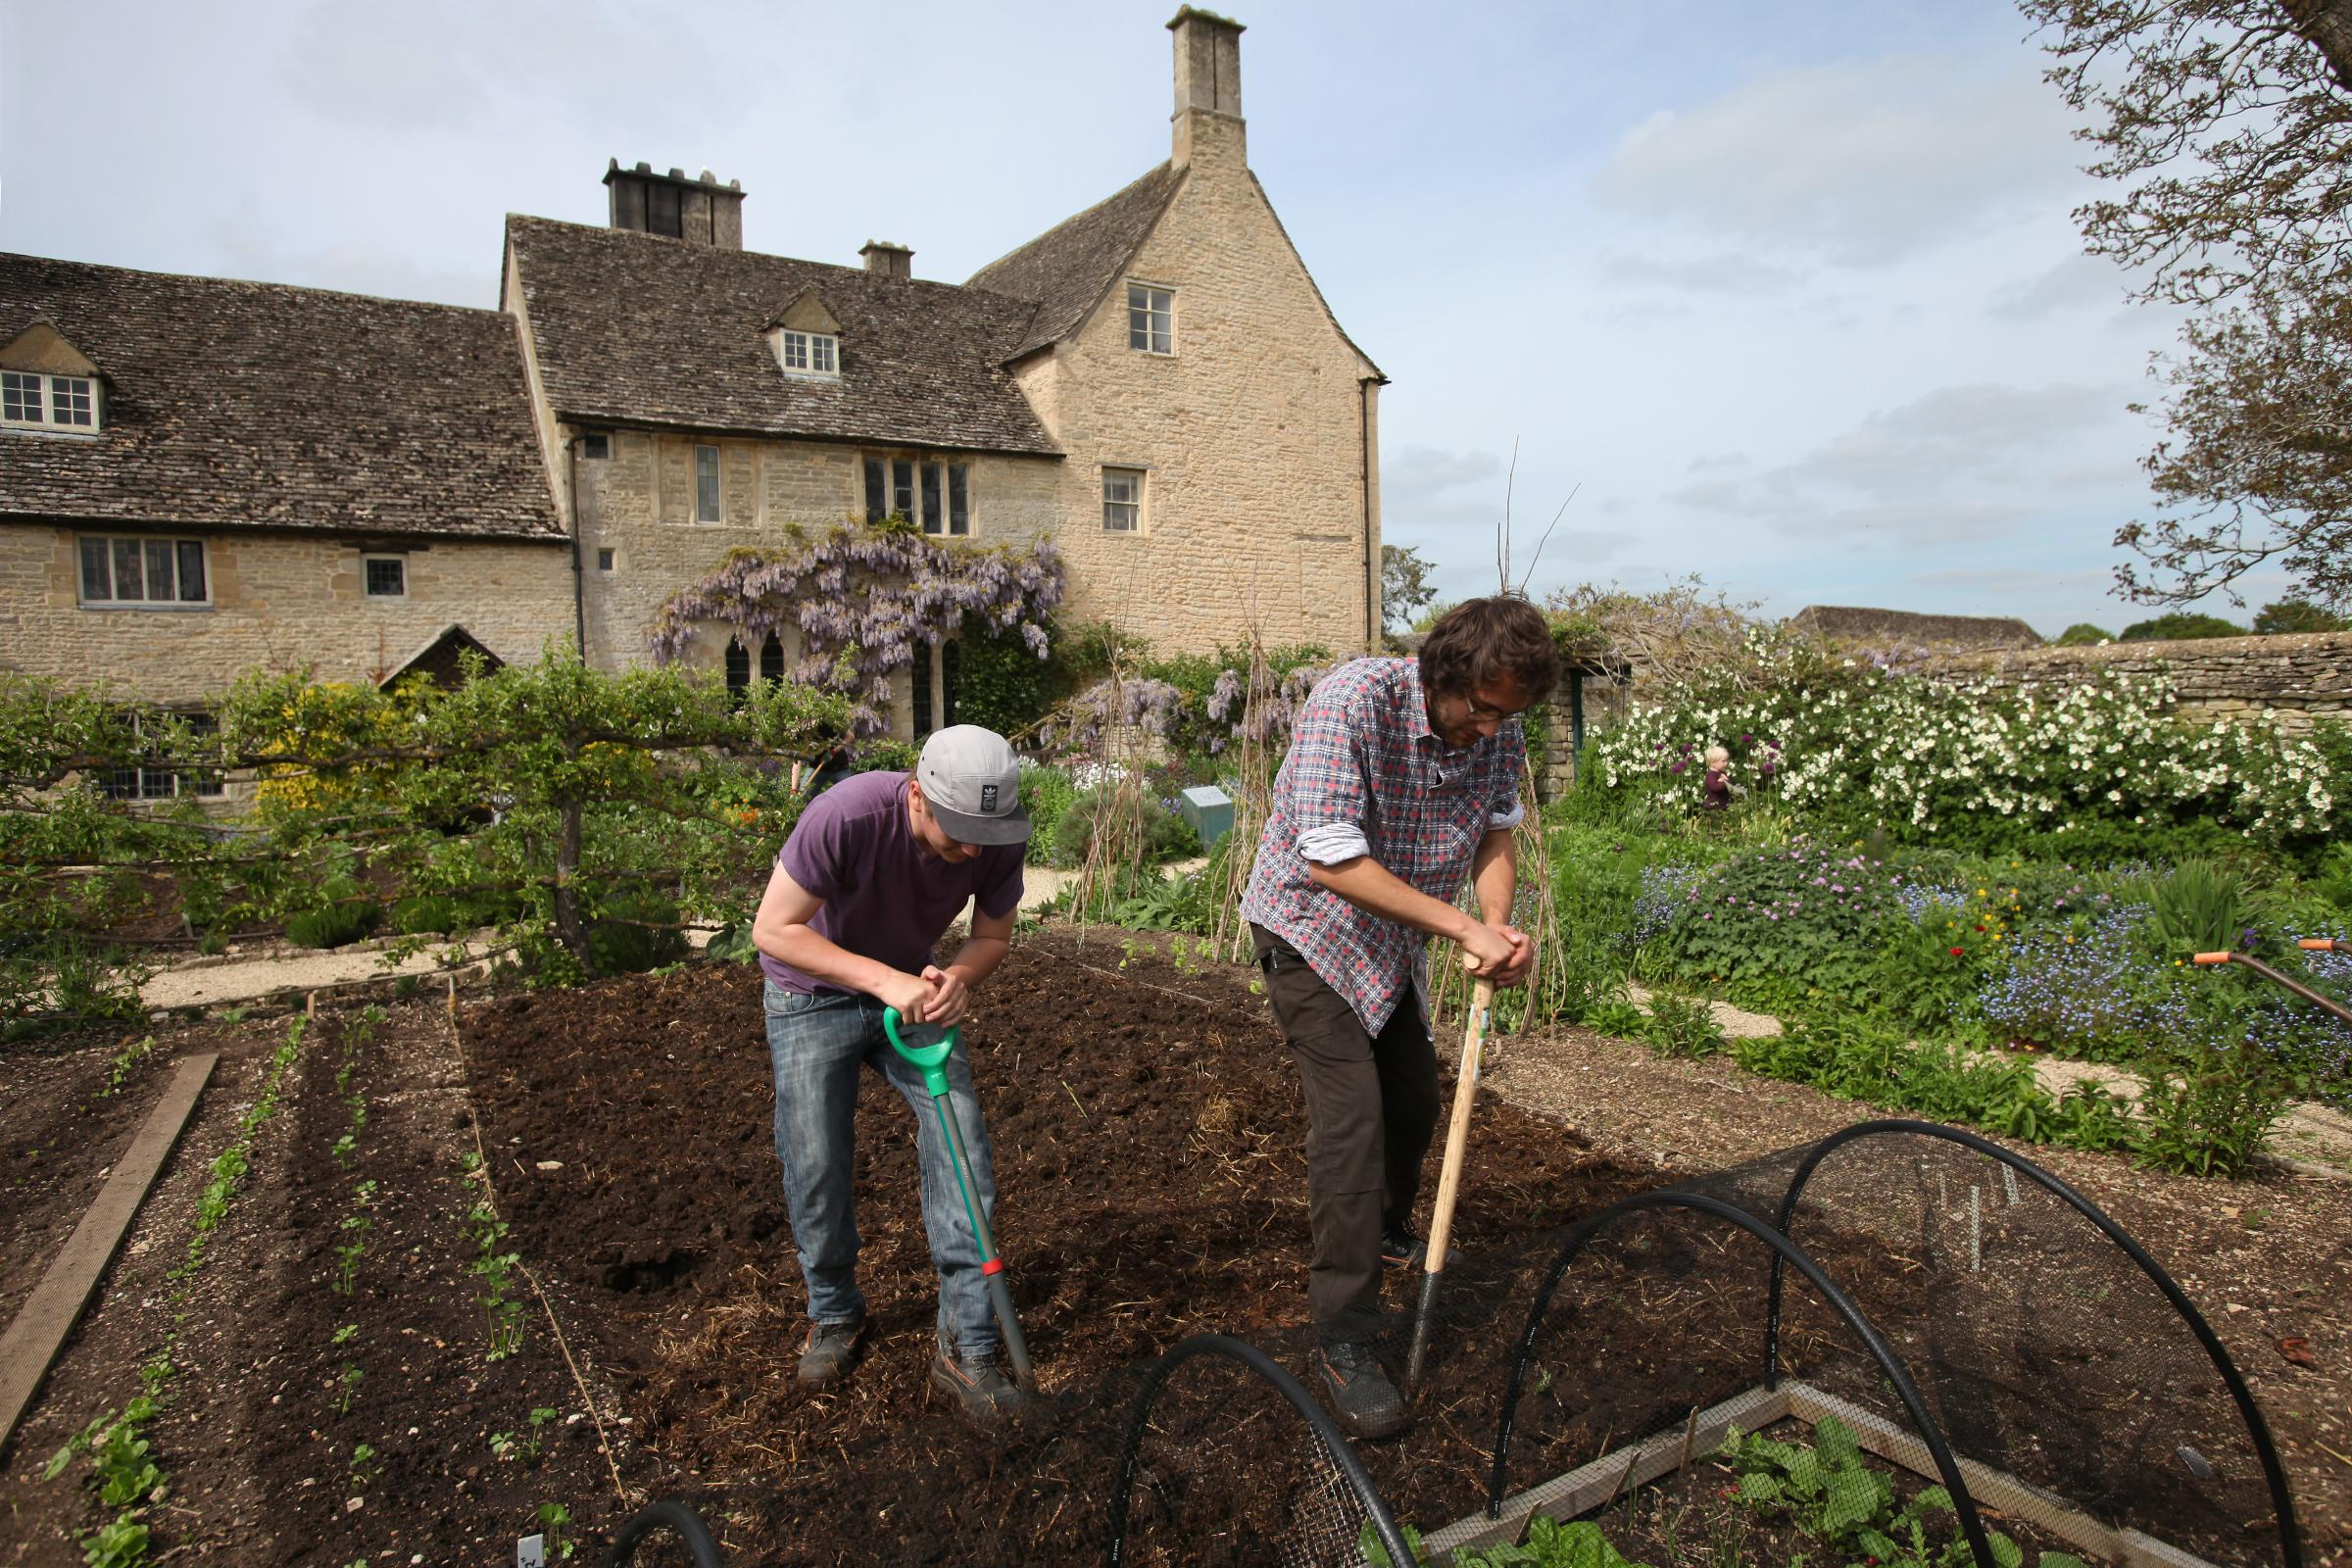 Volunteer Open Day at Cogges Manor Farm